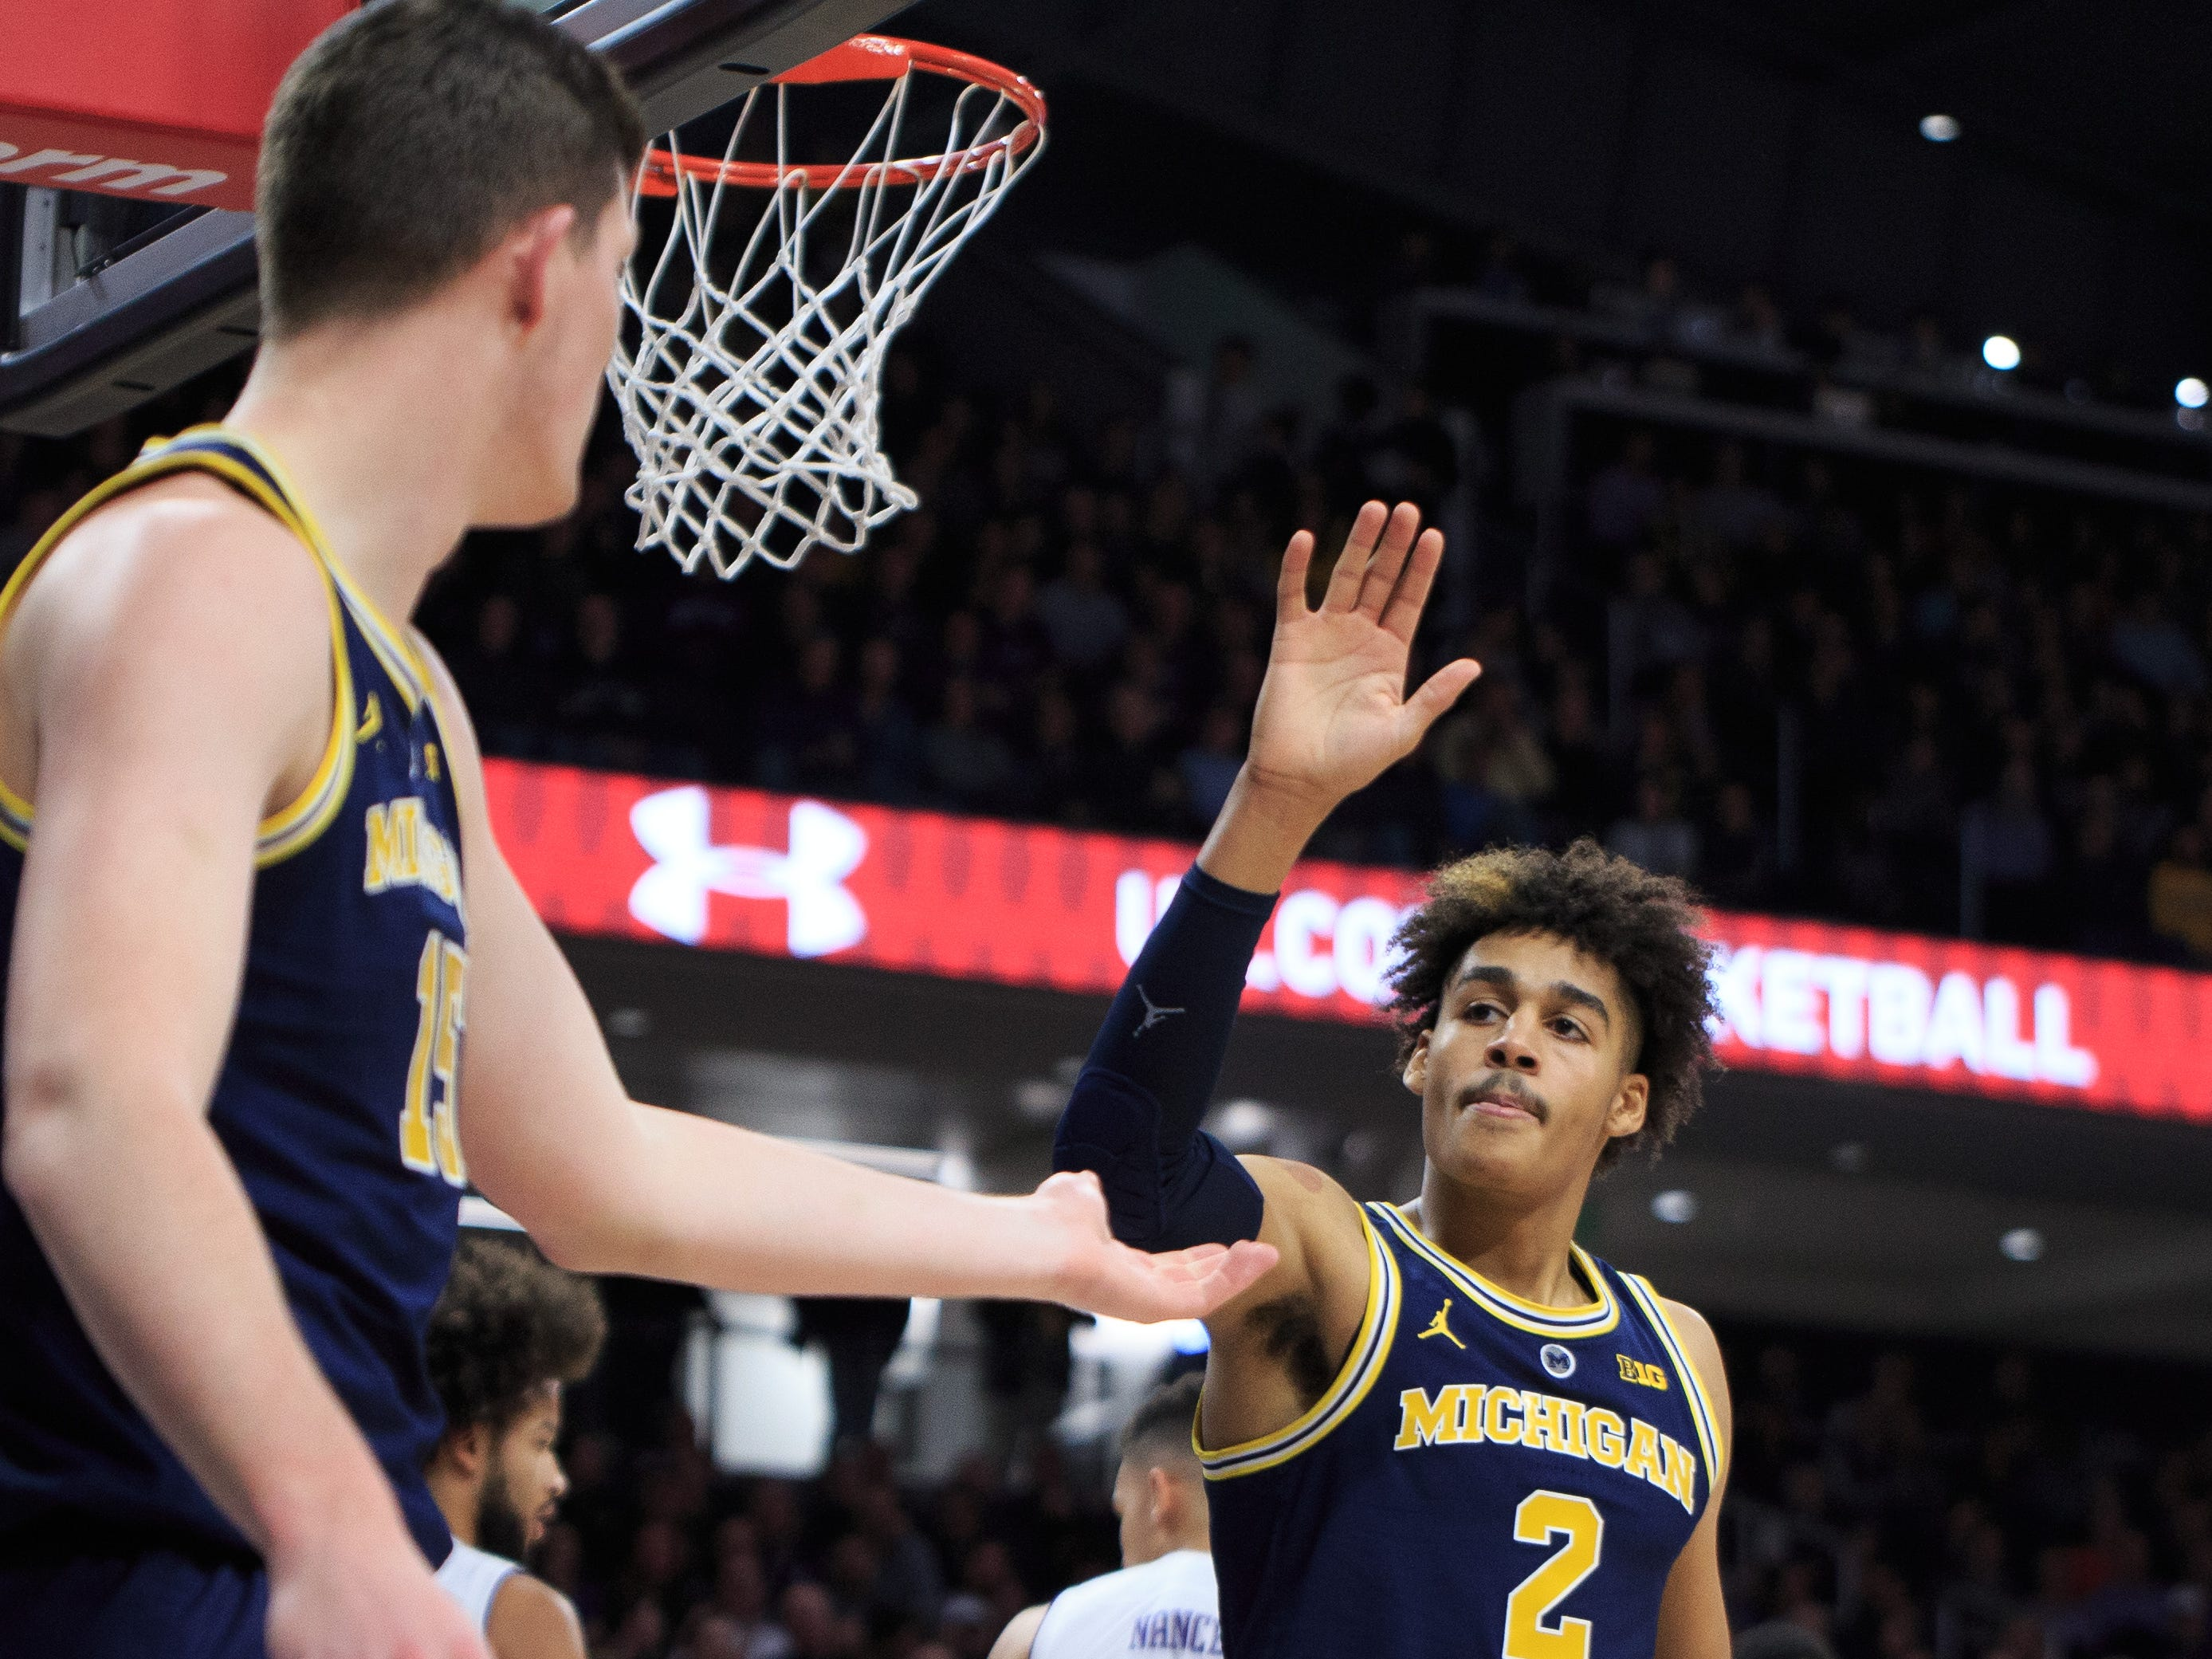 Michigan's Jordan Poole, right, celebrates with Jon Teske against Northwestern in the first half at Welsh-Ryan Arena on Dec. 4, 2018 in Evanston, Ill.